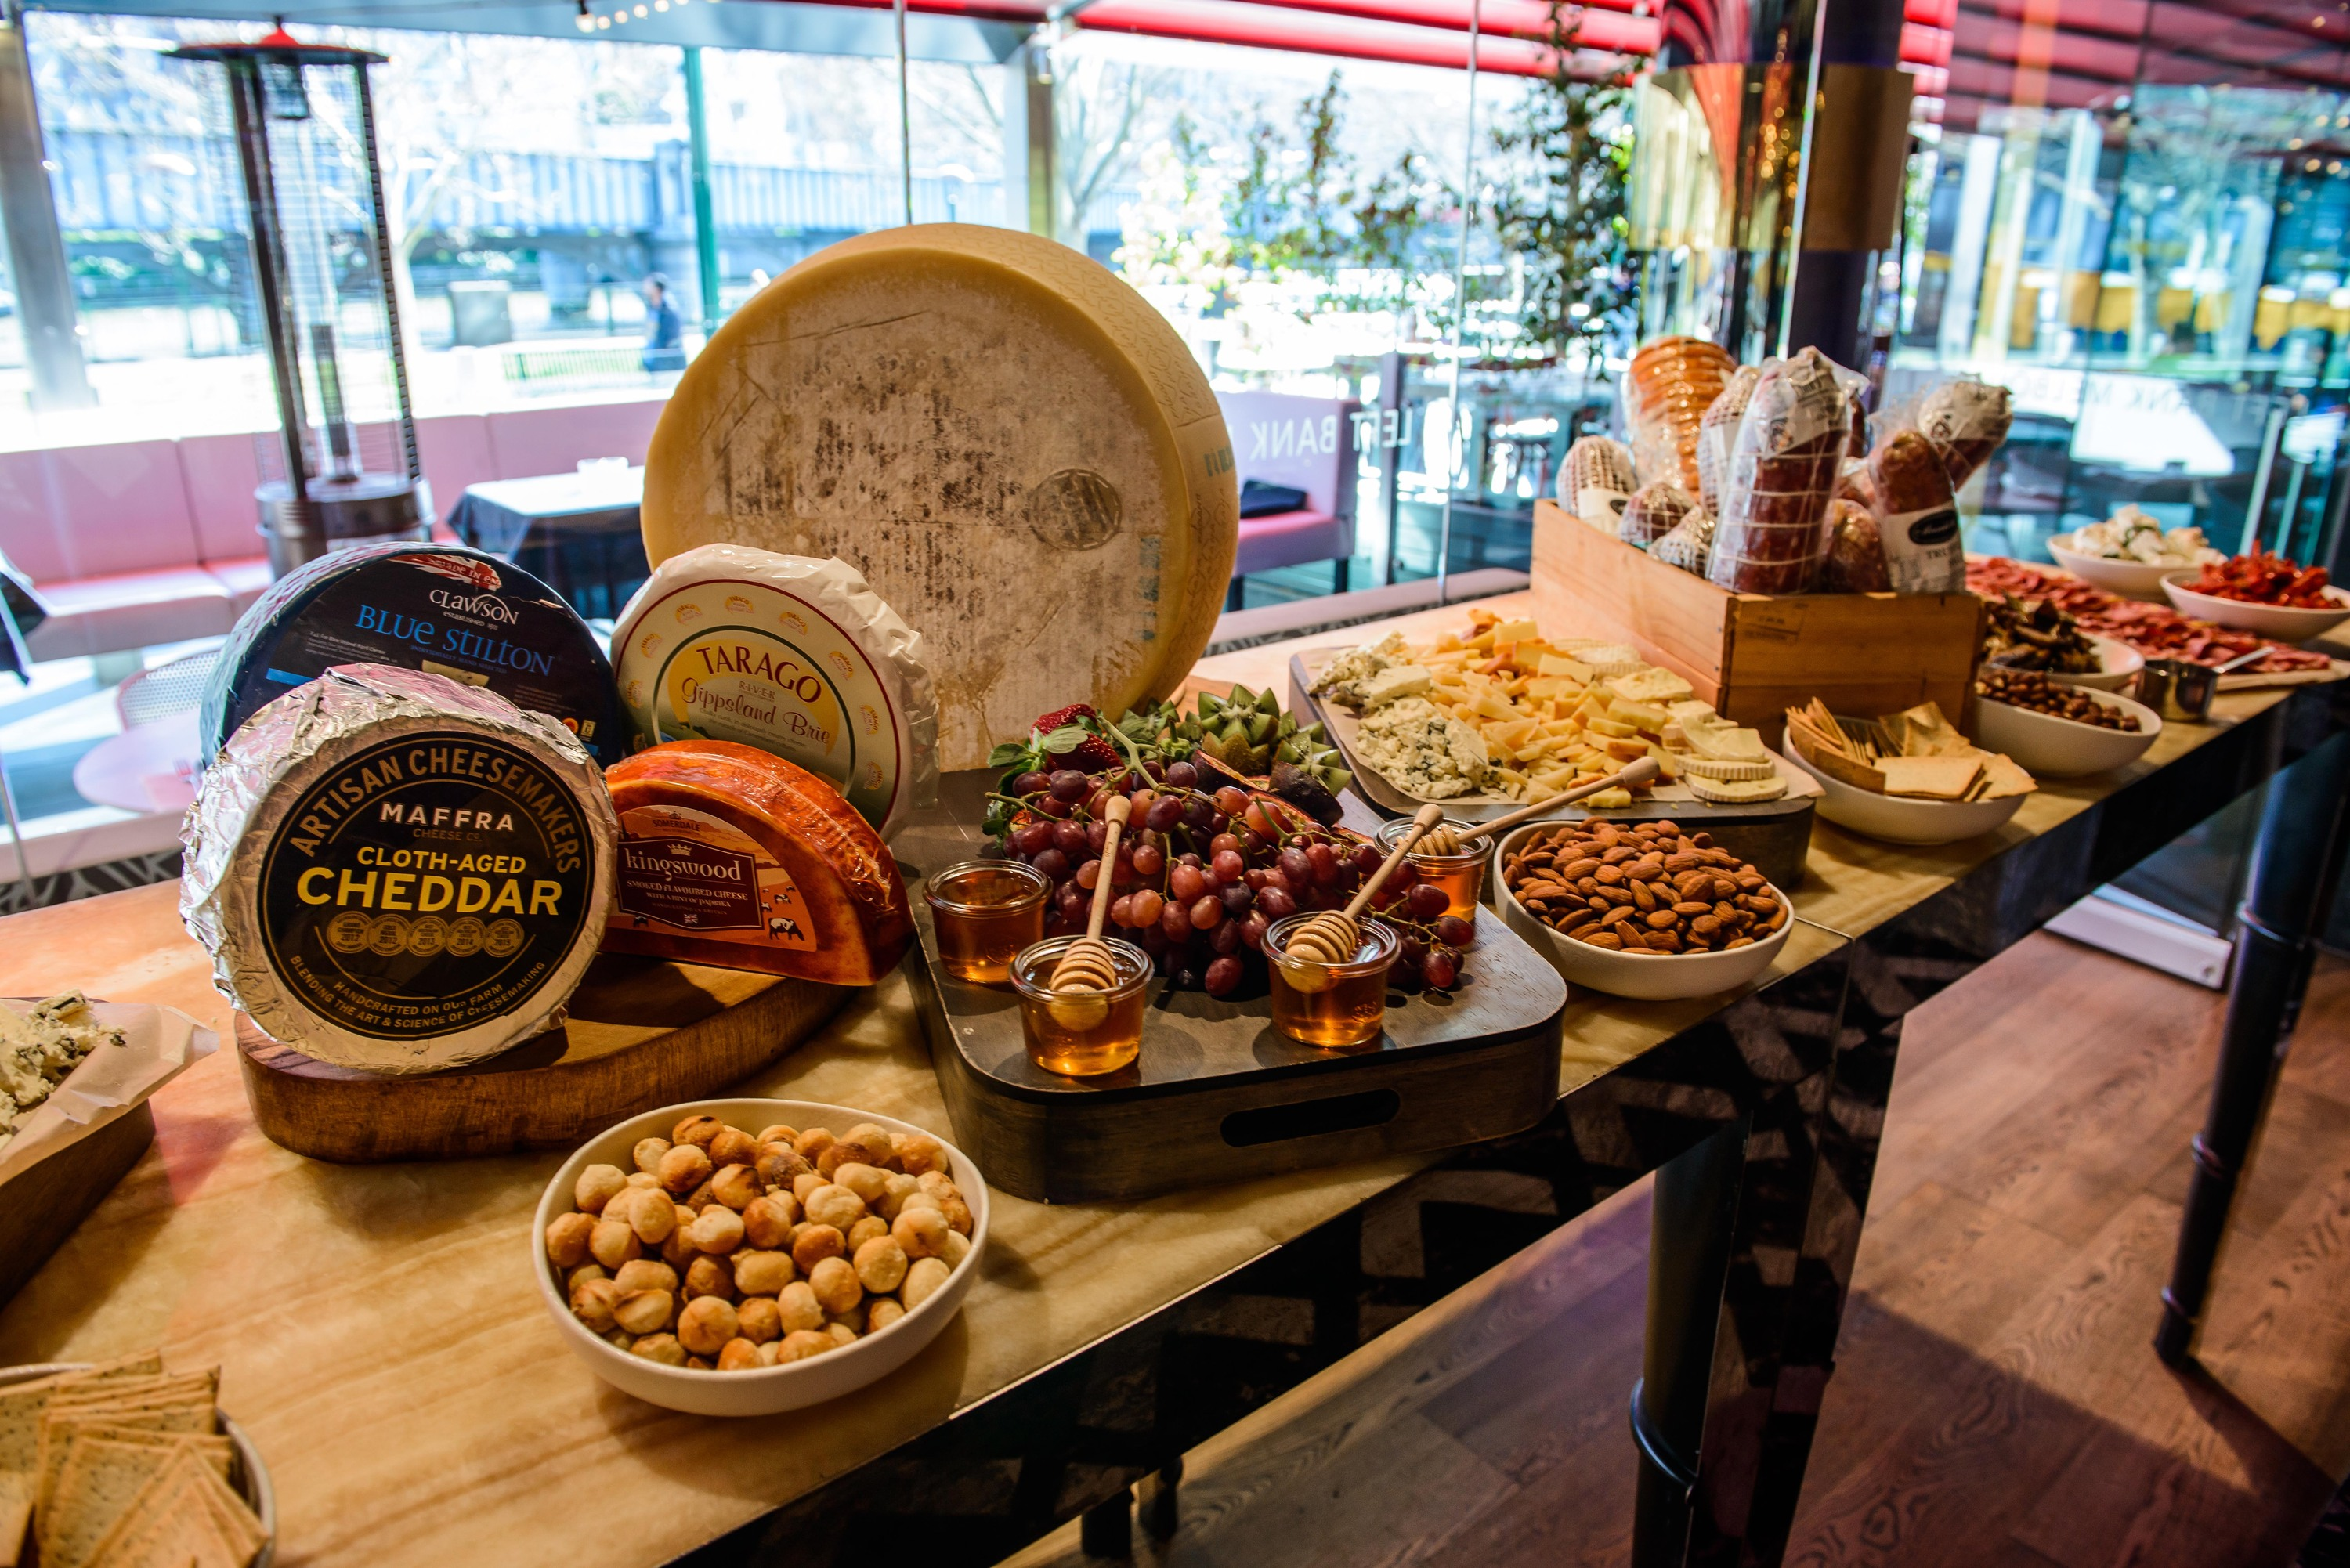 A buffet table with cheese, fruits and nuts